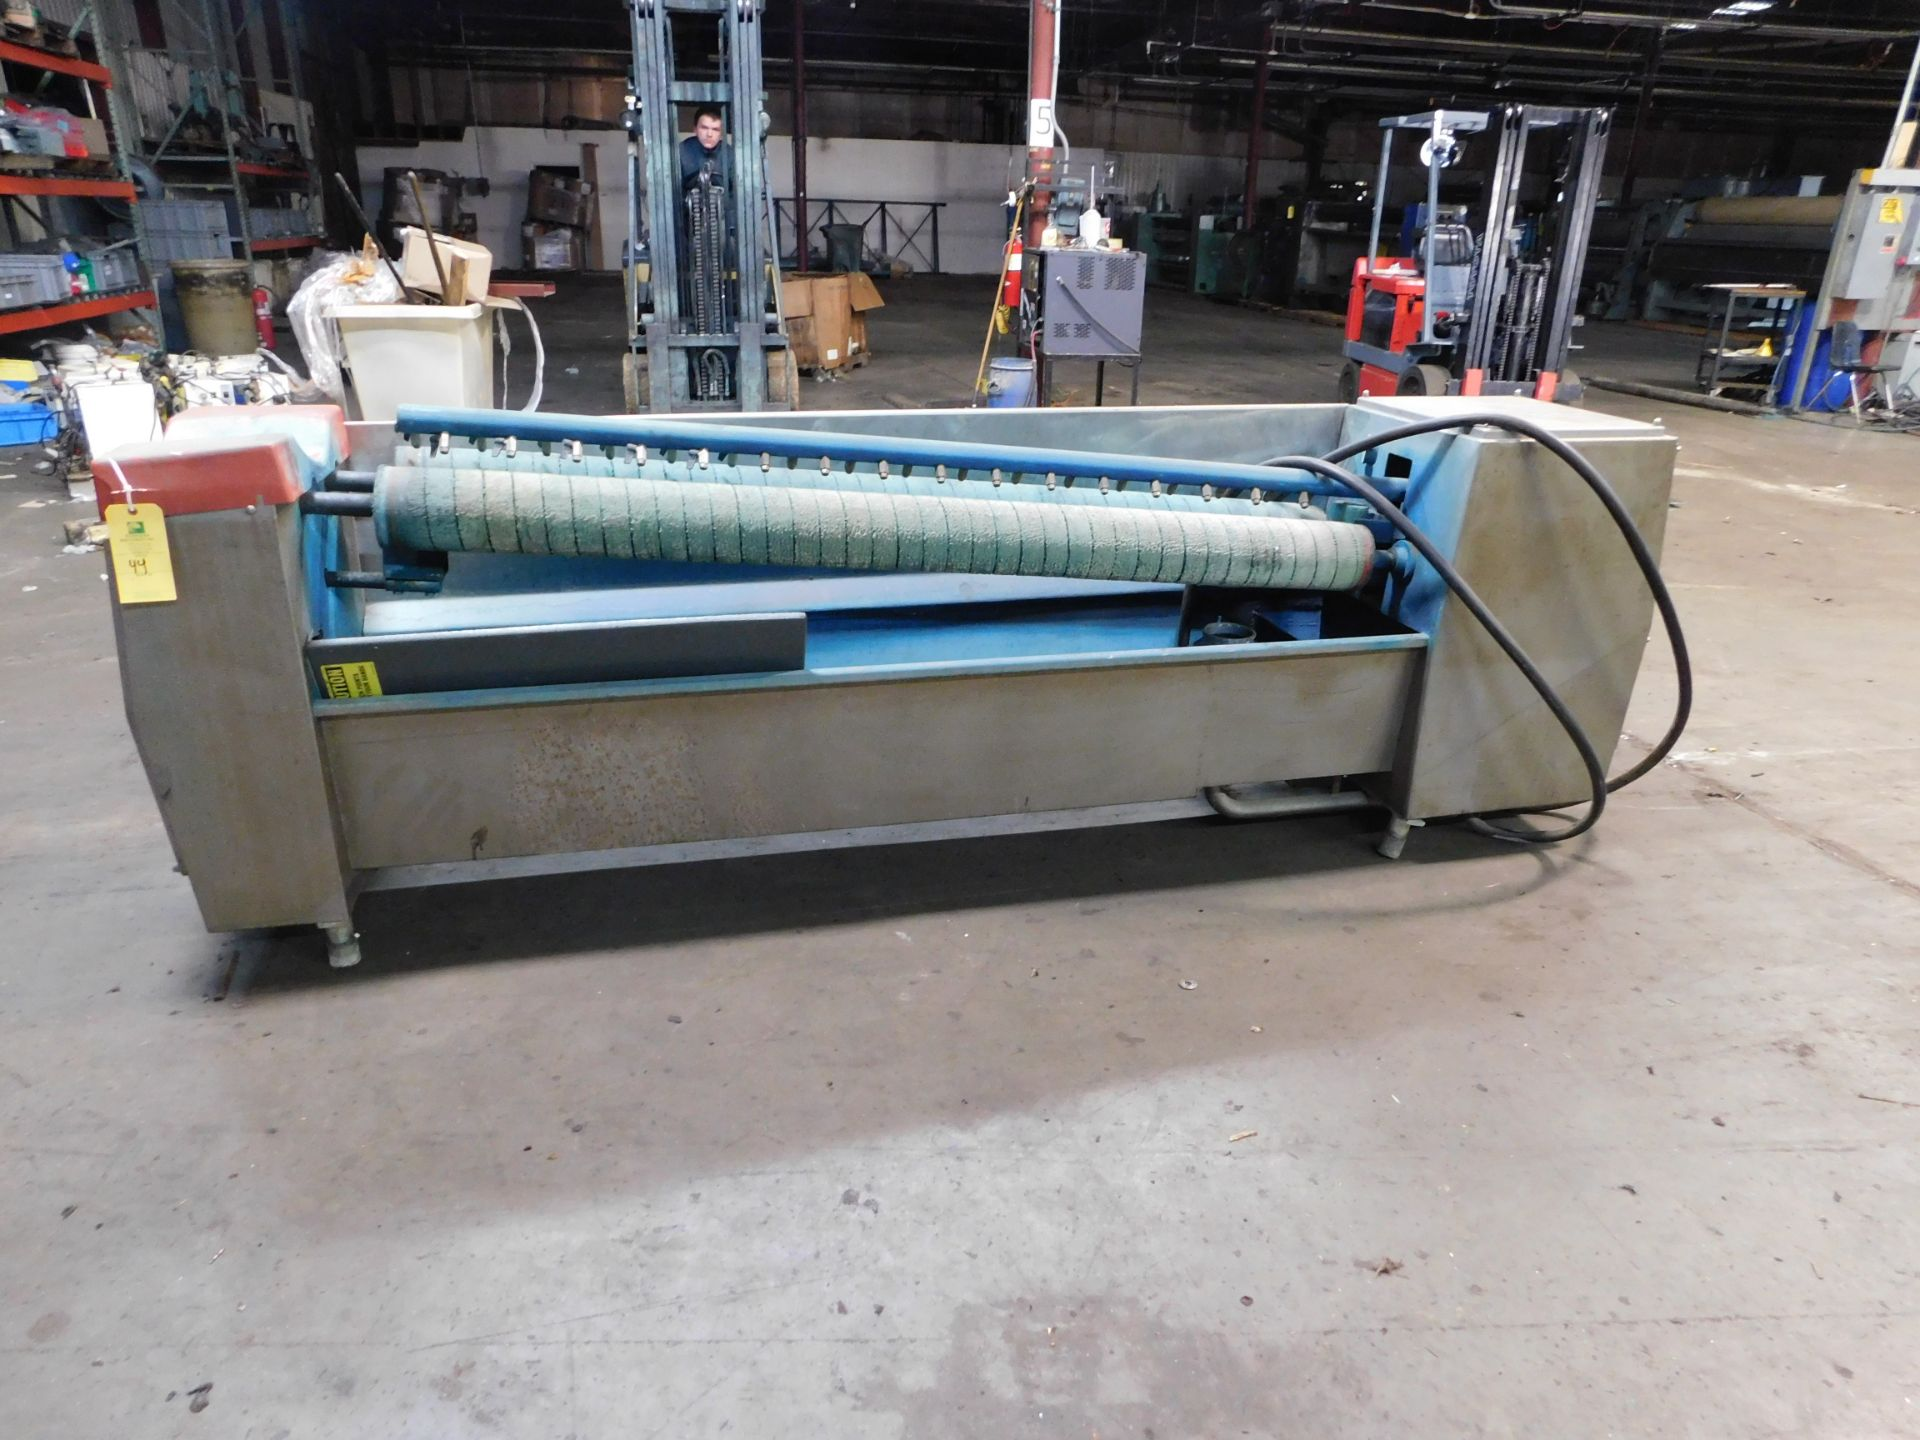 "Lot 21215 - Stork screen washing, Working Width 67 3/4"", Screen washer for Rotary screens, Good Condition,"